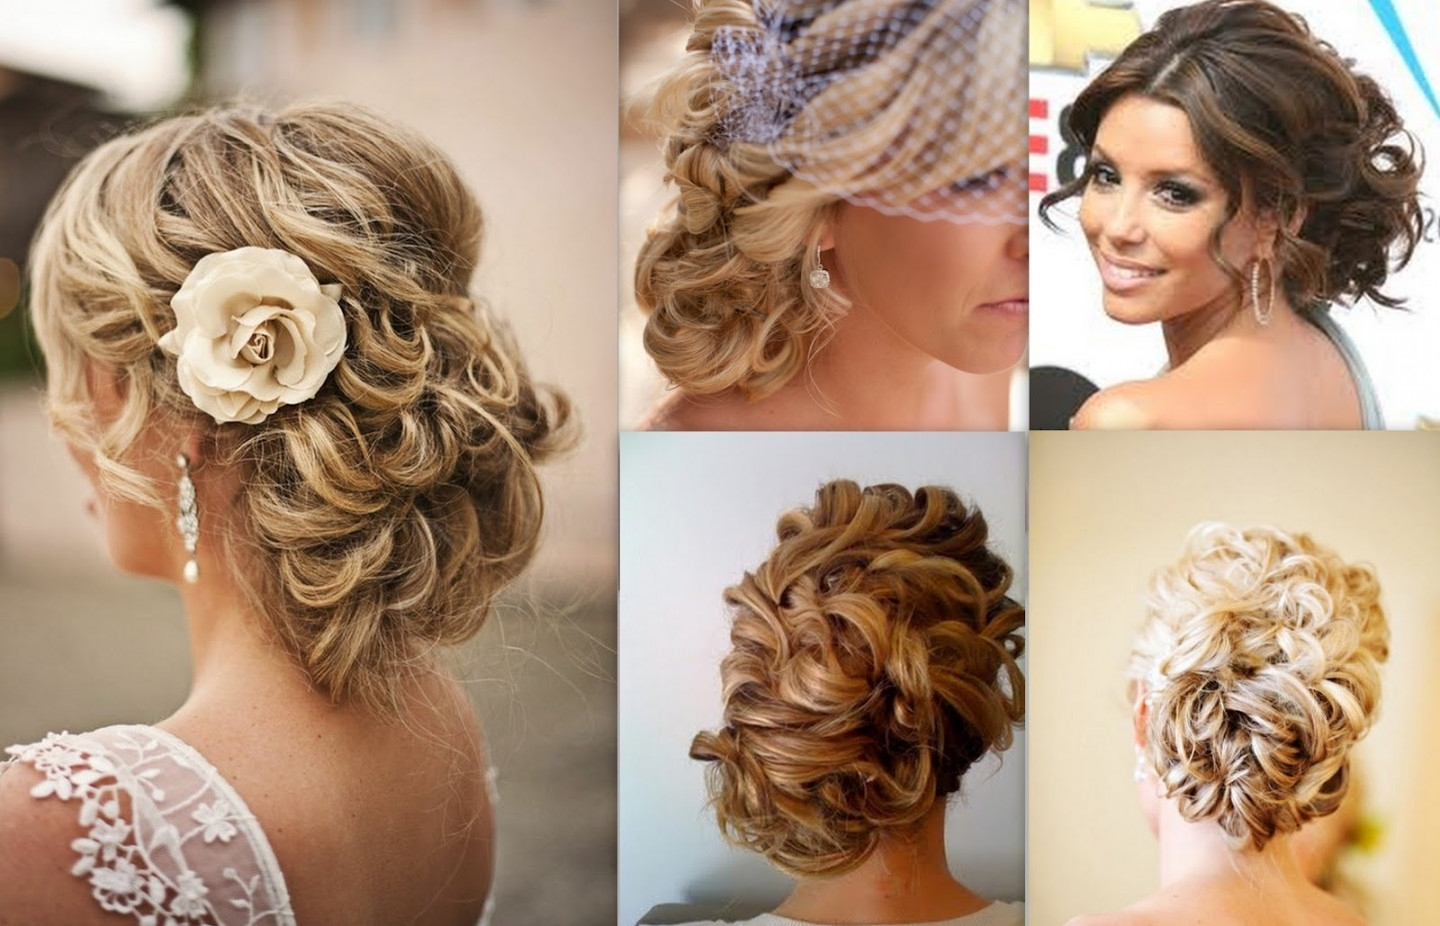 Side Updo Hairstyles Wedding Hairstyles Buns To The Side Weddings Inside Side Updo Hairstyles (View 11 of 15)